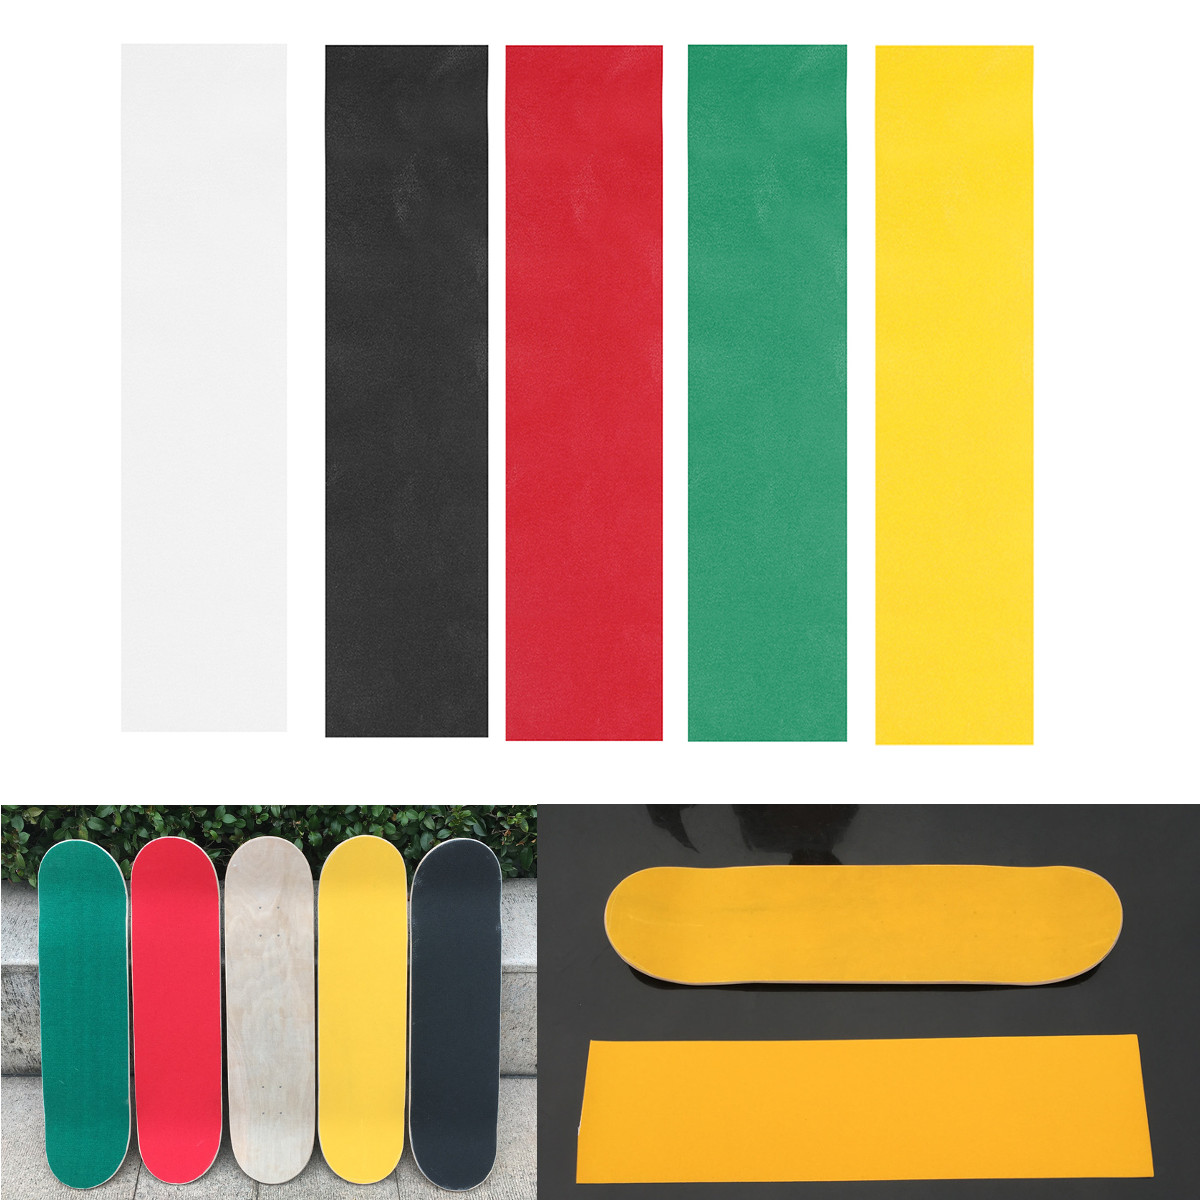 Colorful Skateboard Deck Sandpaper Grip Tape Griptape S